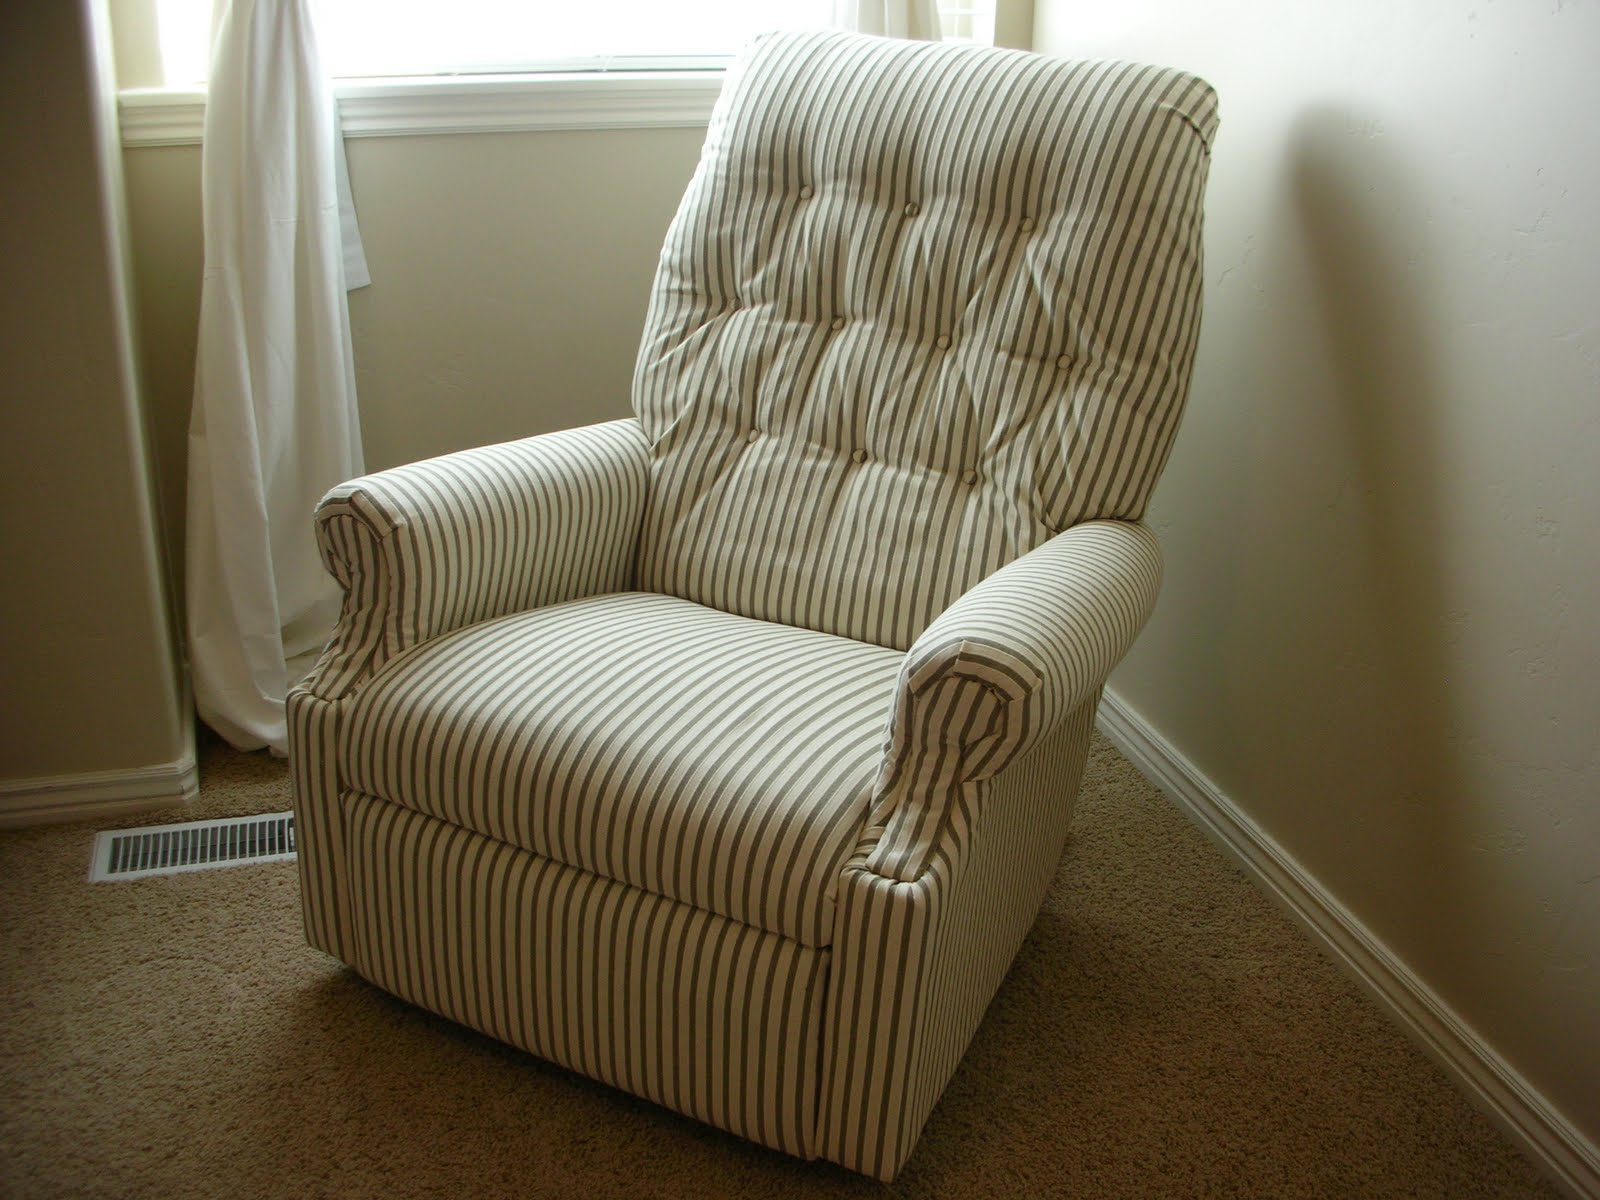 Diy reupholster an old la z boy recliner